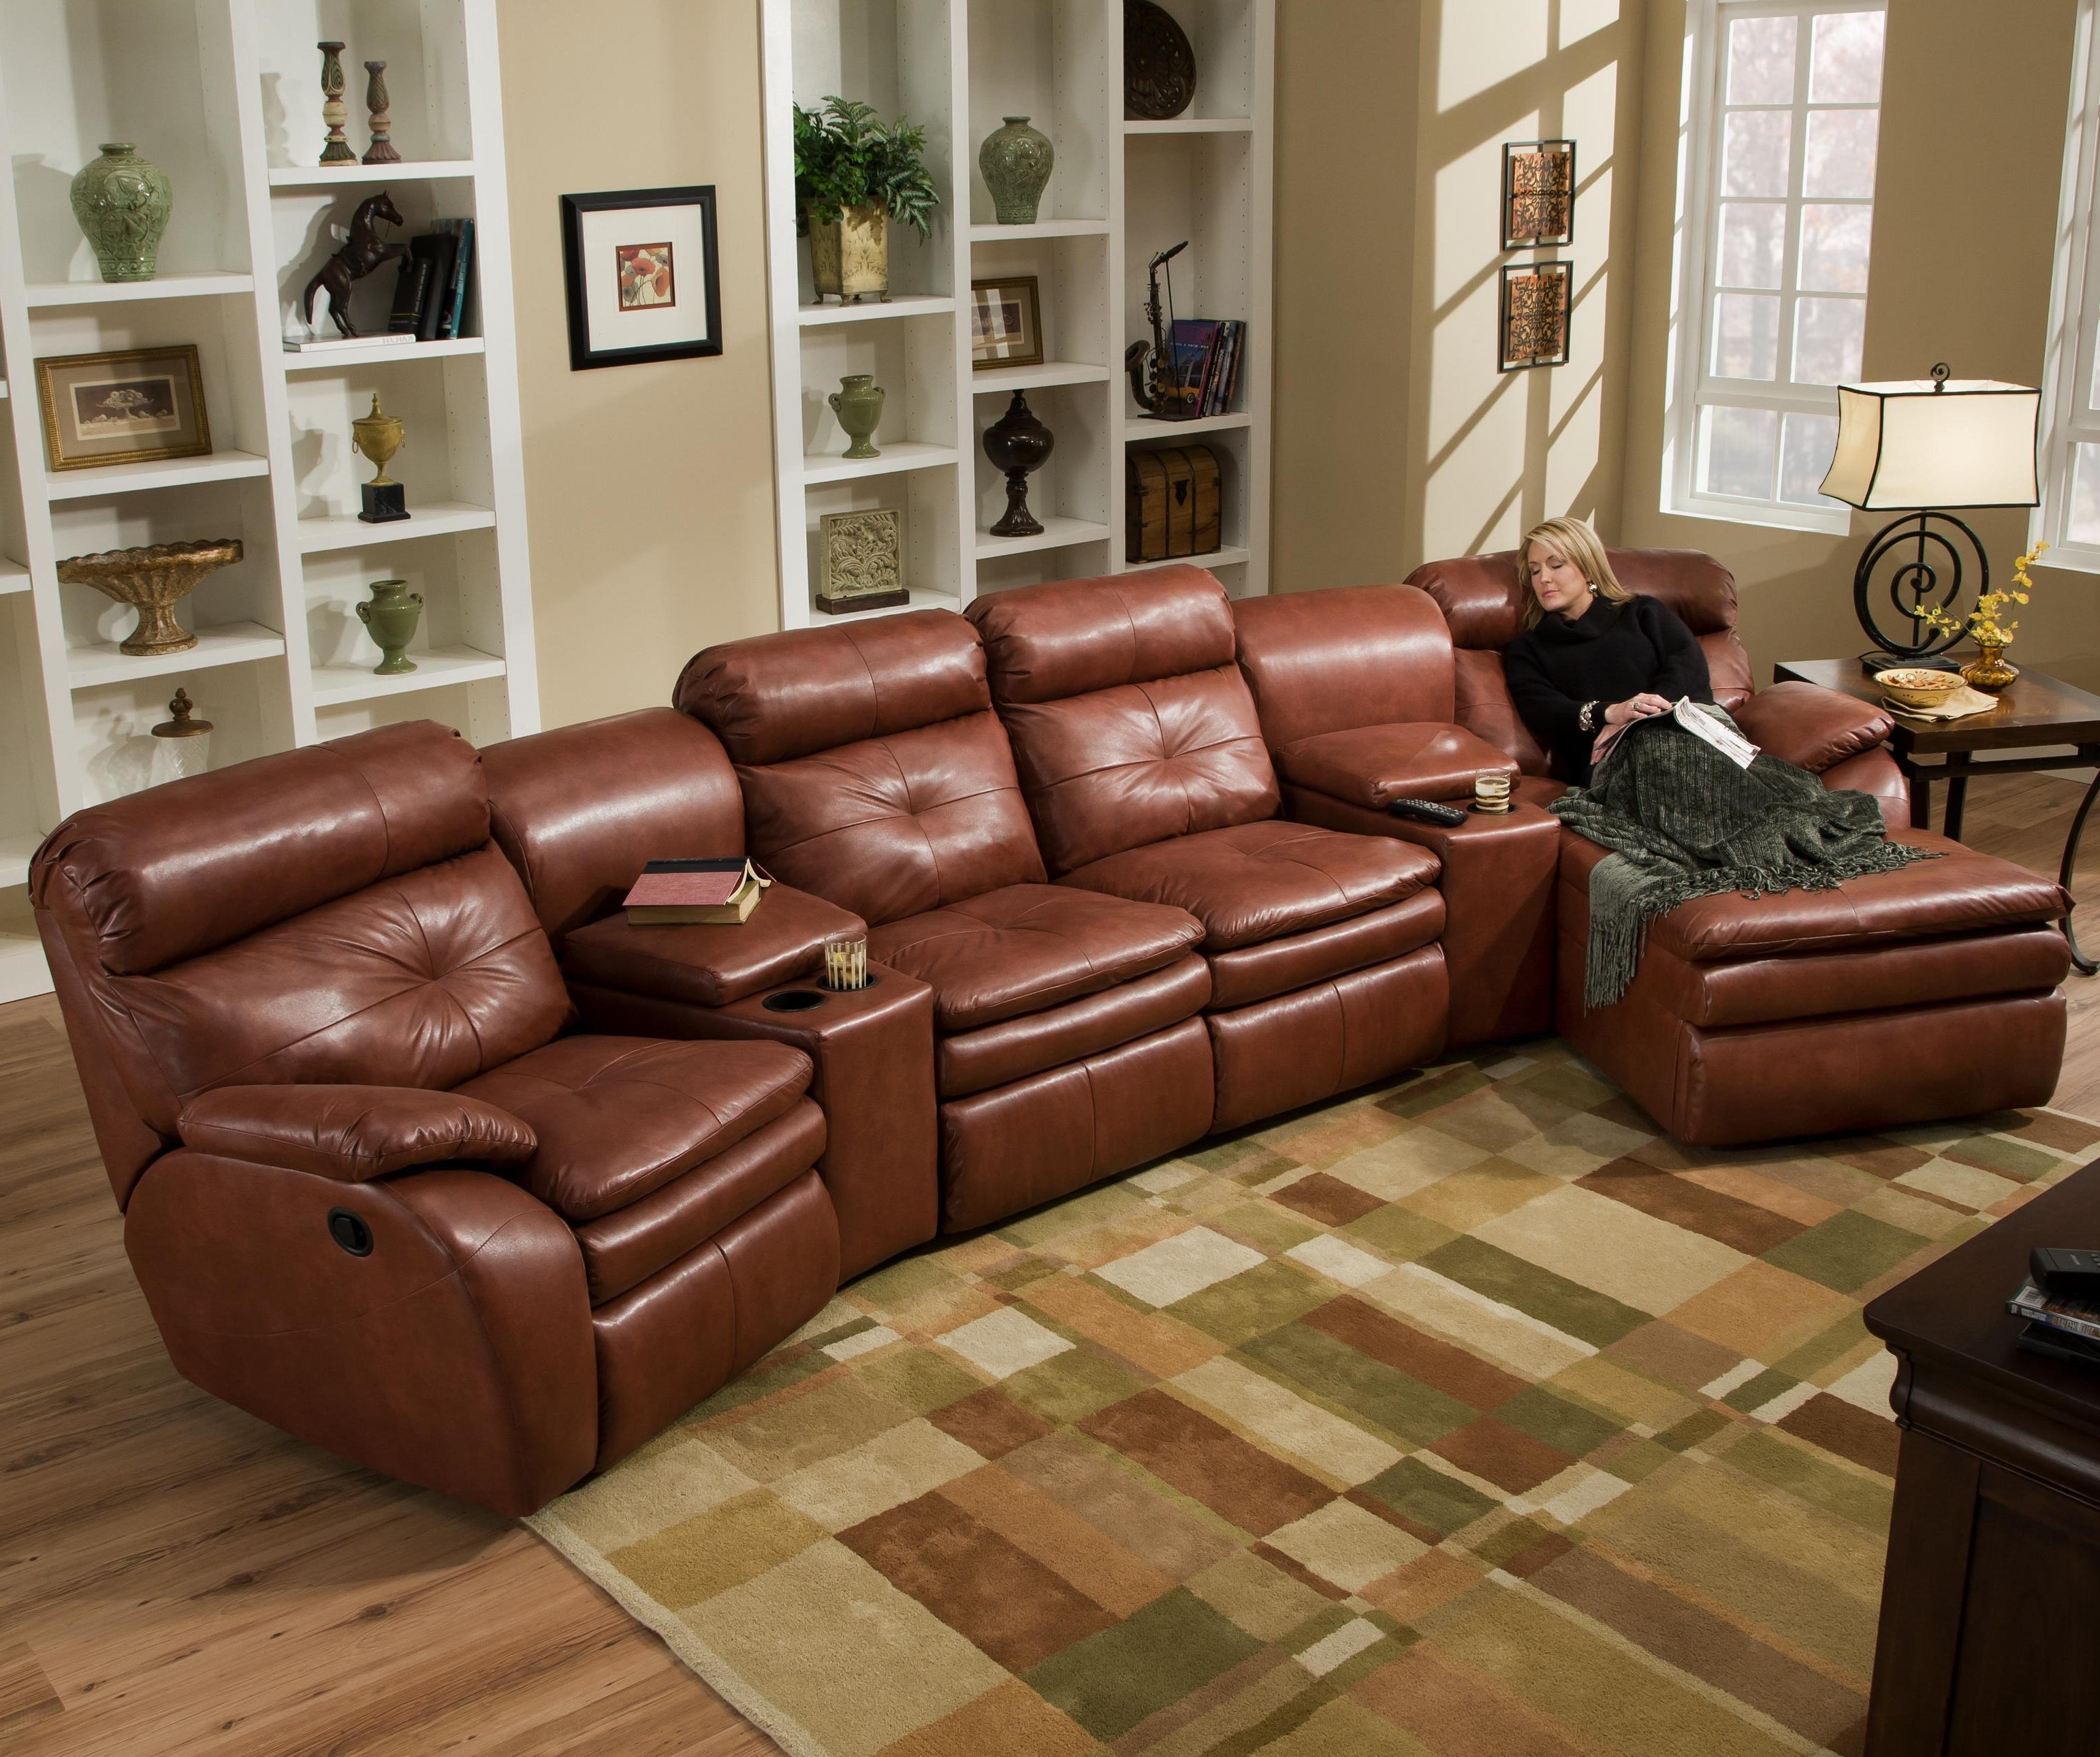 Recent Sectional Sofas With Recliners For Small Spaces In Apartment Sized Furniture Living Room Small Space Reclining Sofa (View 2 of 15)